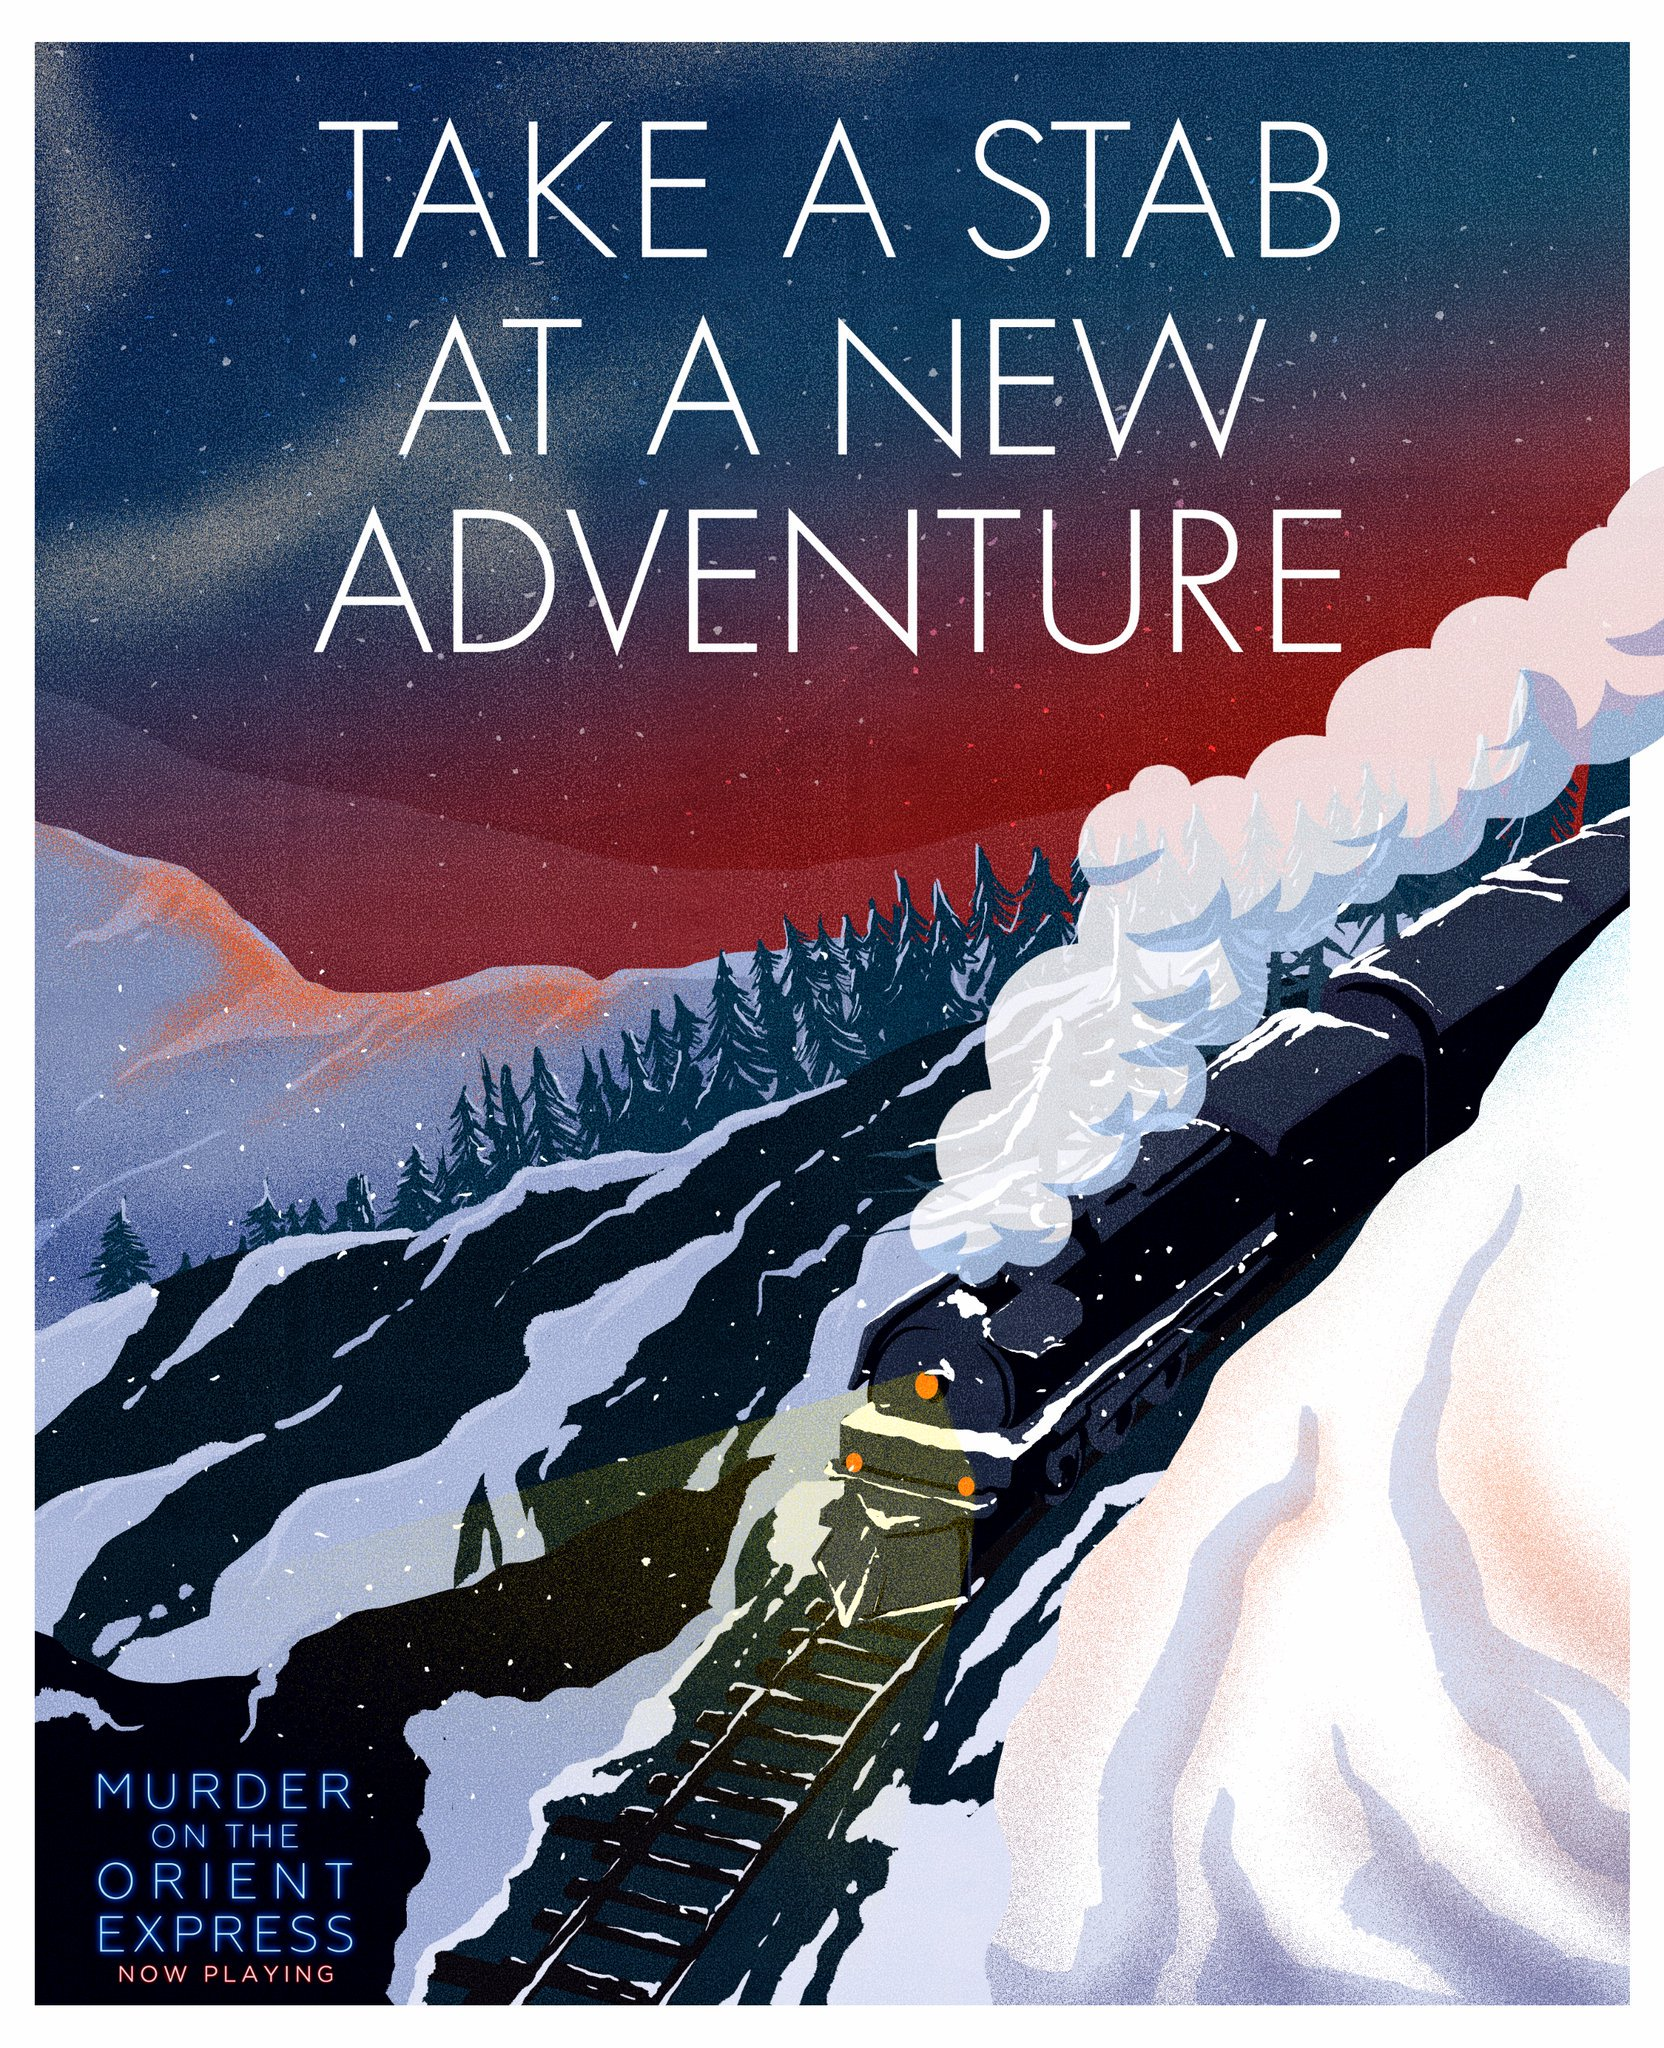 RT @andmichaelgreen: A perfect weekend to board the train and escape the world. #OrientExpressMovie https://t.co/akMocqP9hk